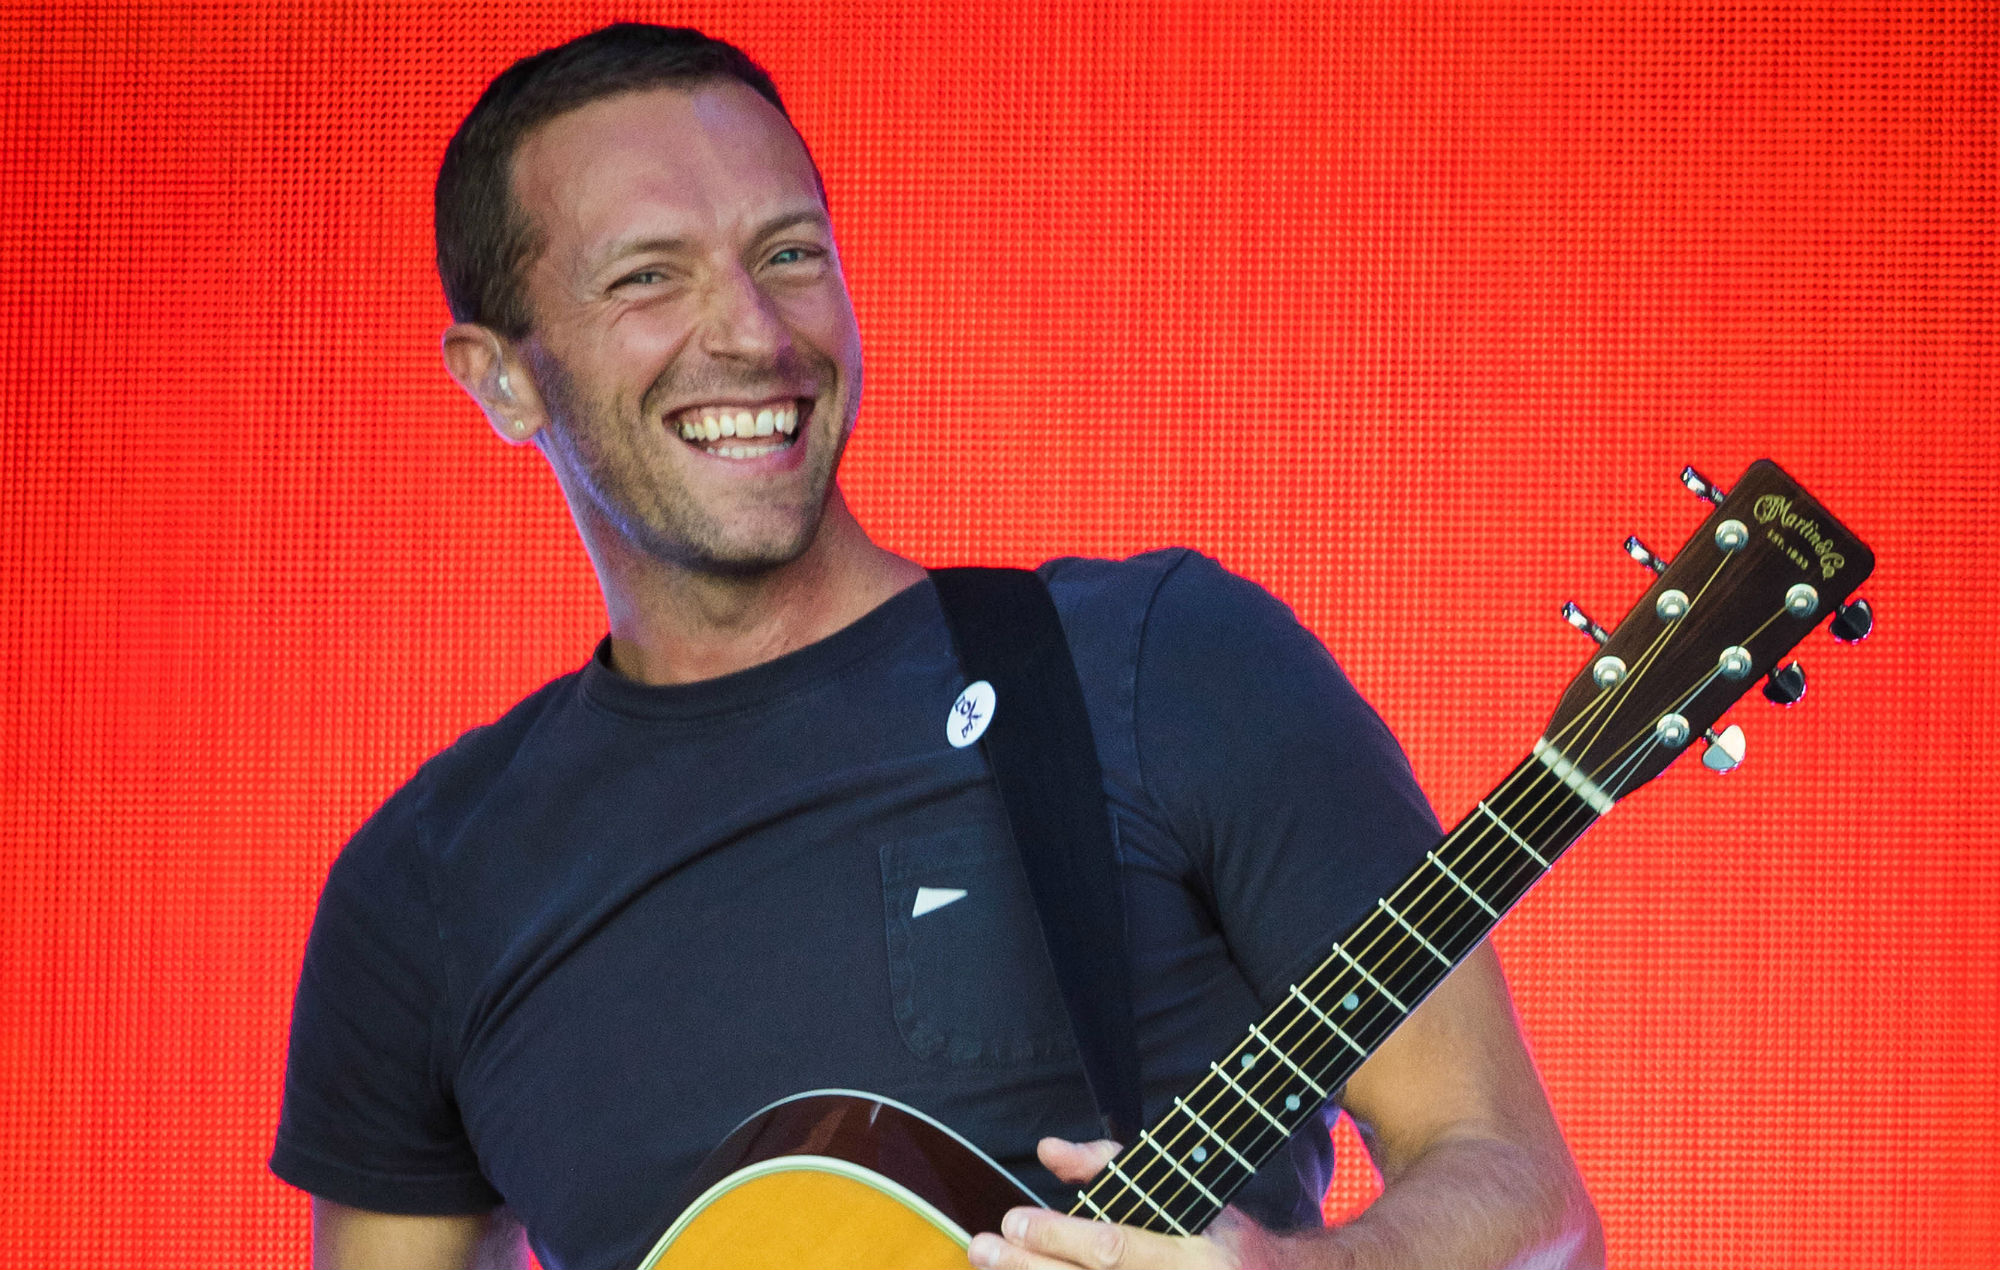 Coldplay's Chris Martin speaks out on new album 'Everyday Life' and the tracks Orphans' and 'Arabesque'